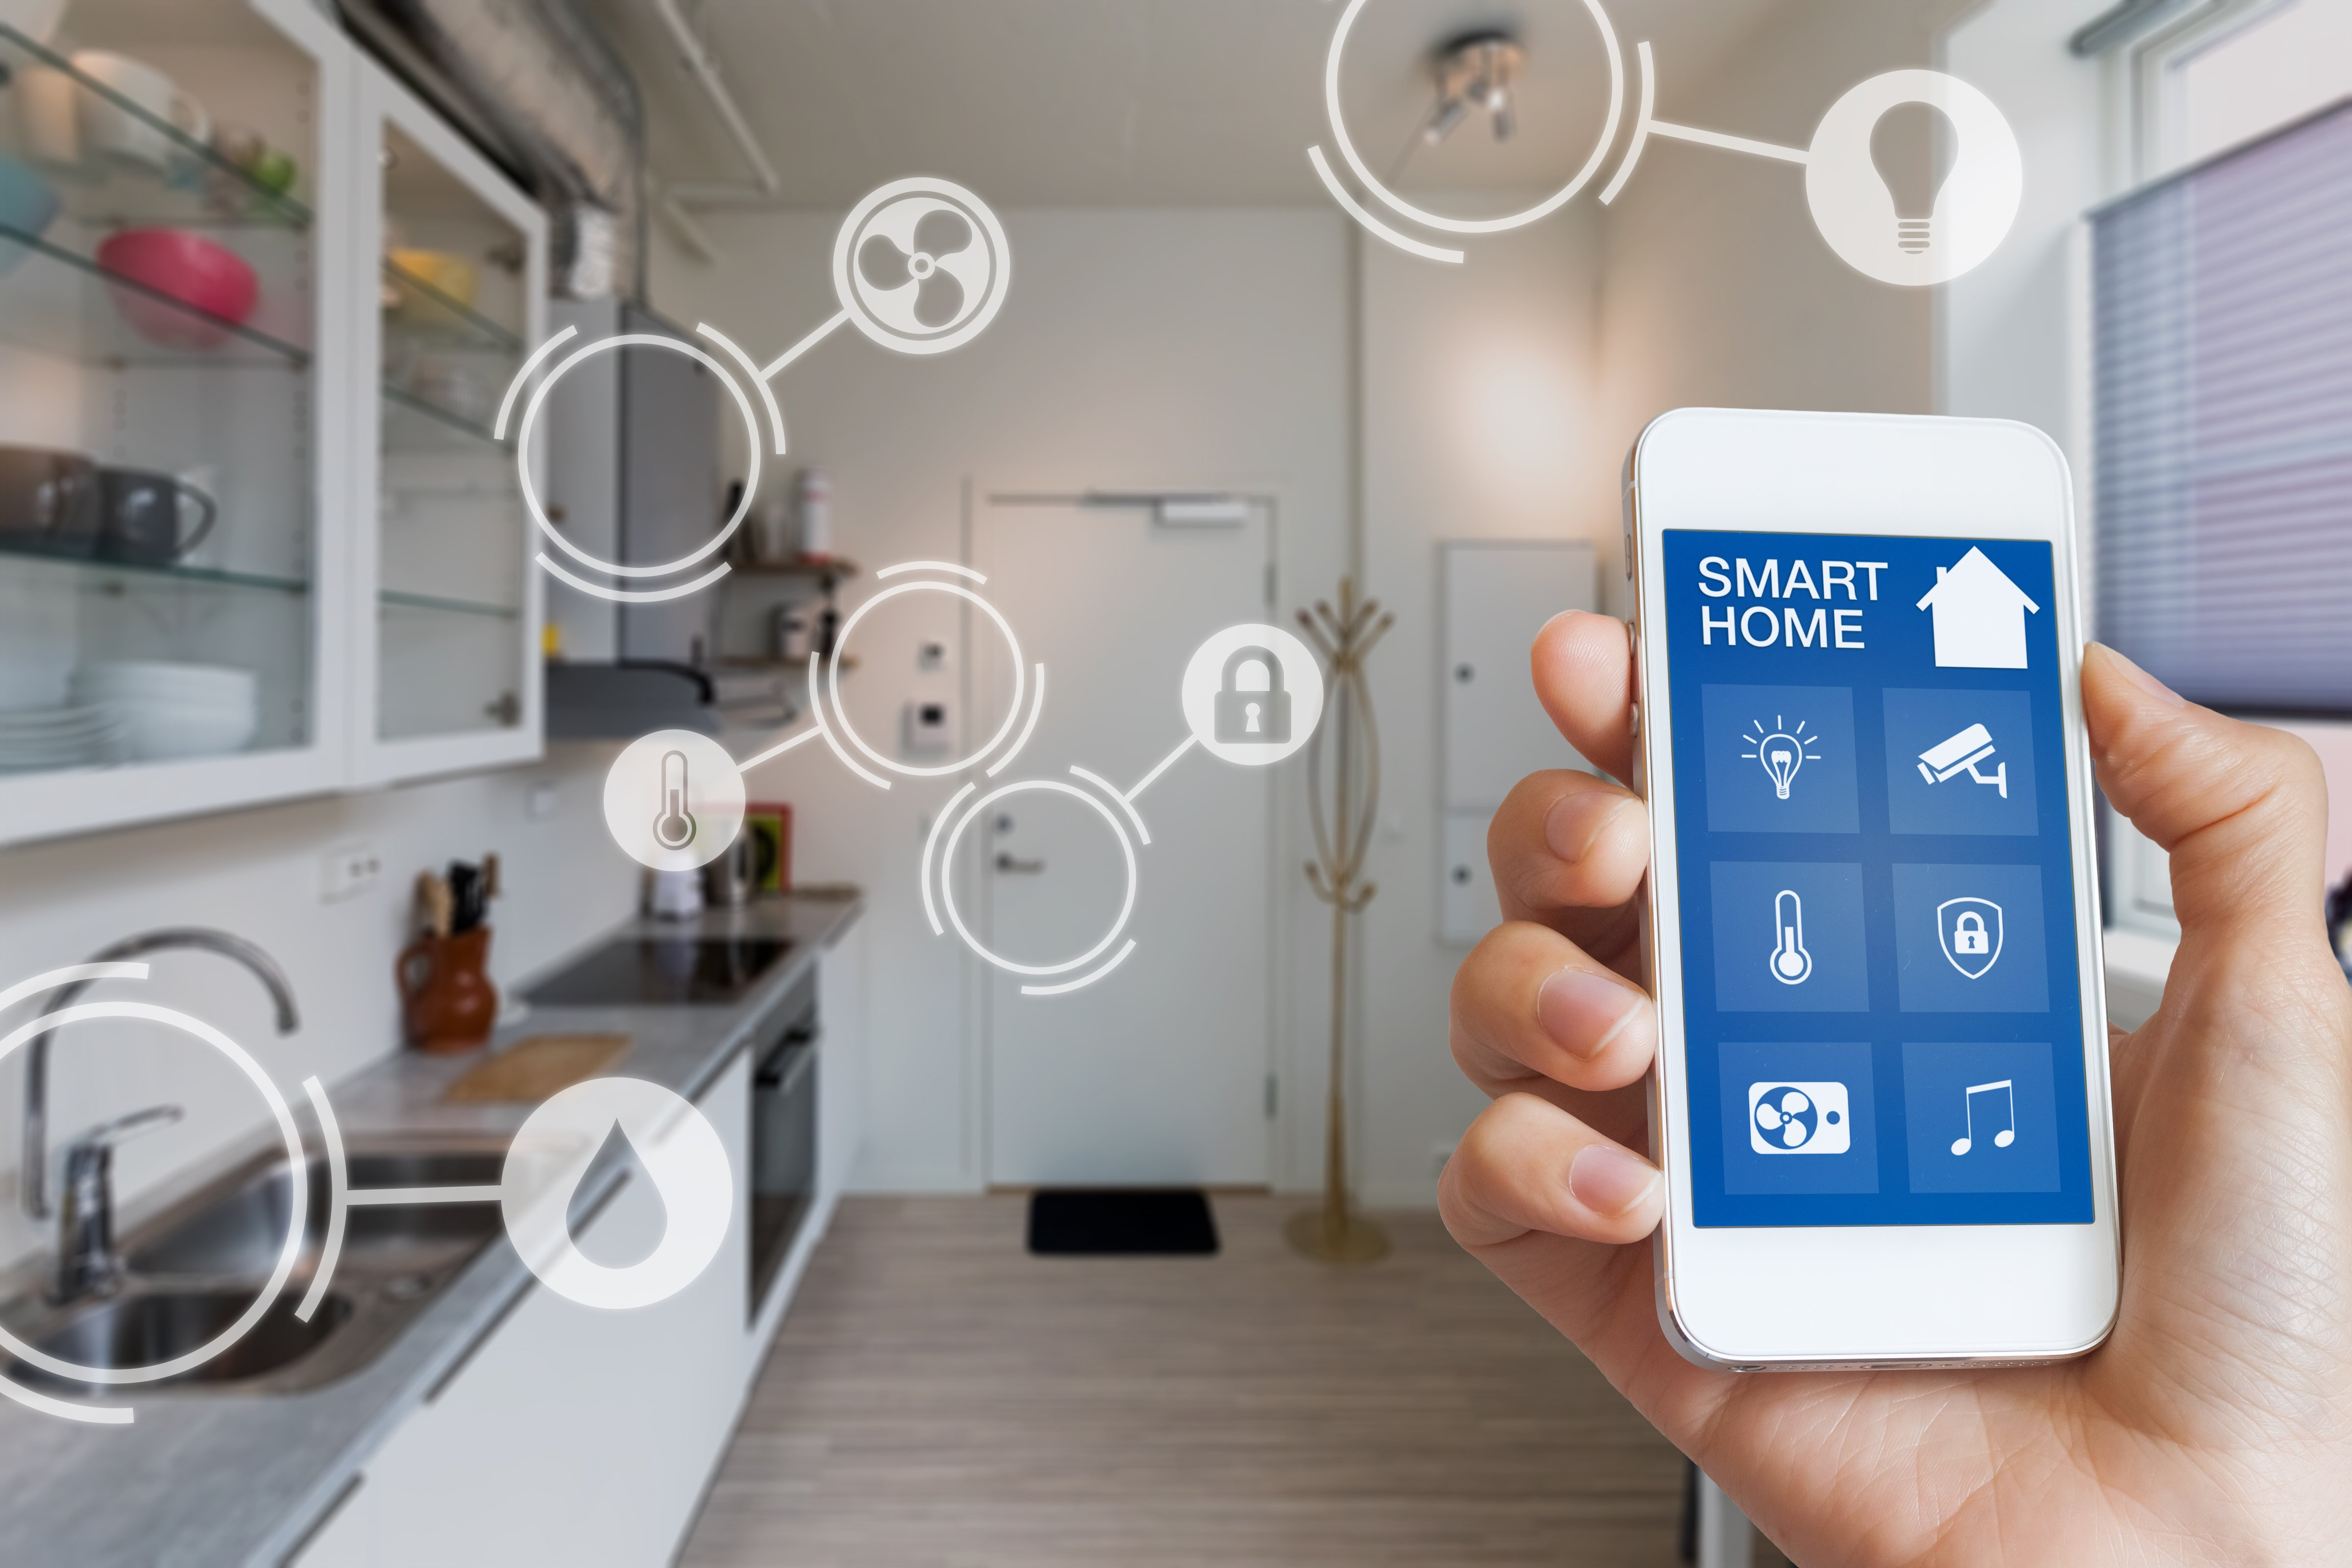 The business models gaining ground in the smart-home market